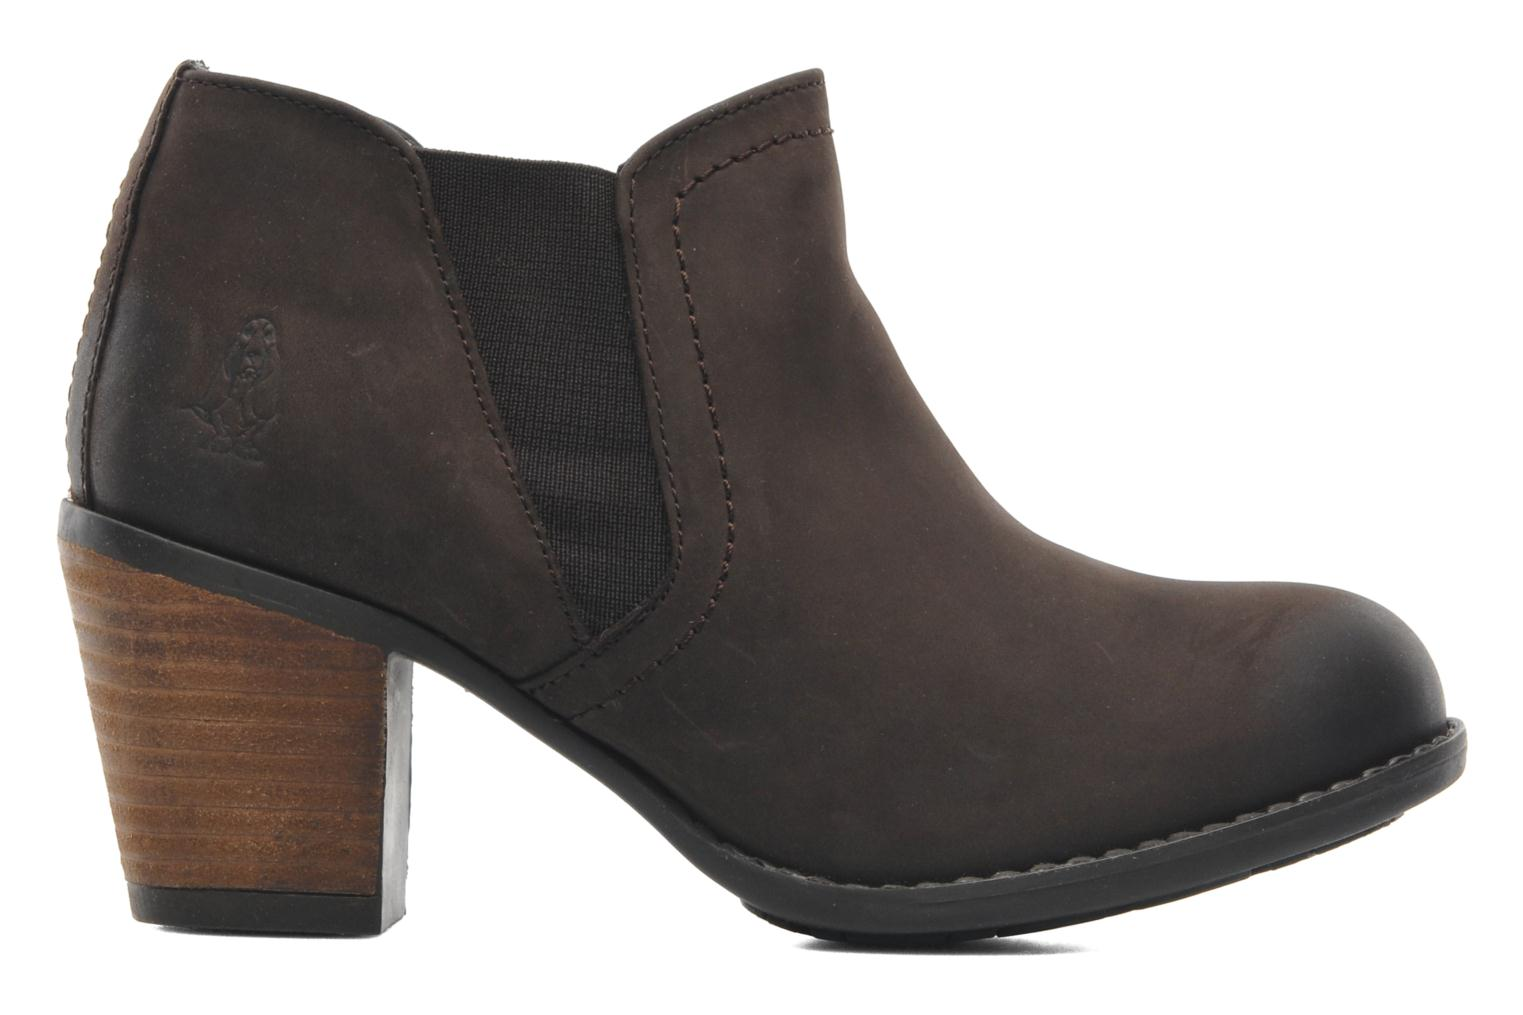 Bottines et boots Hush Puppies Moorland Chelsea Marron vue derrière